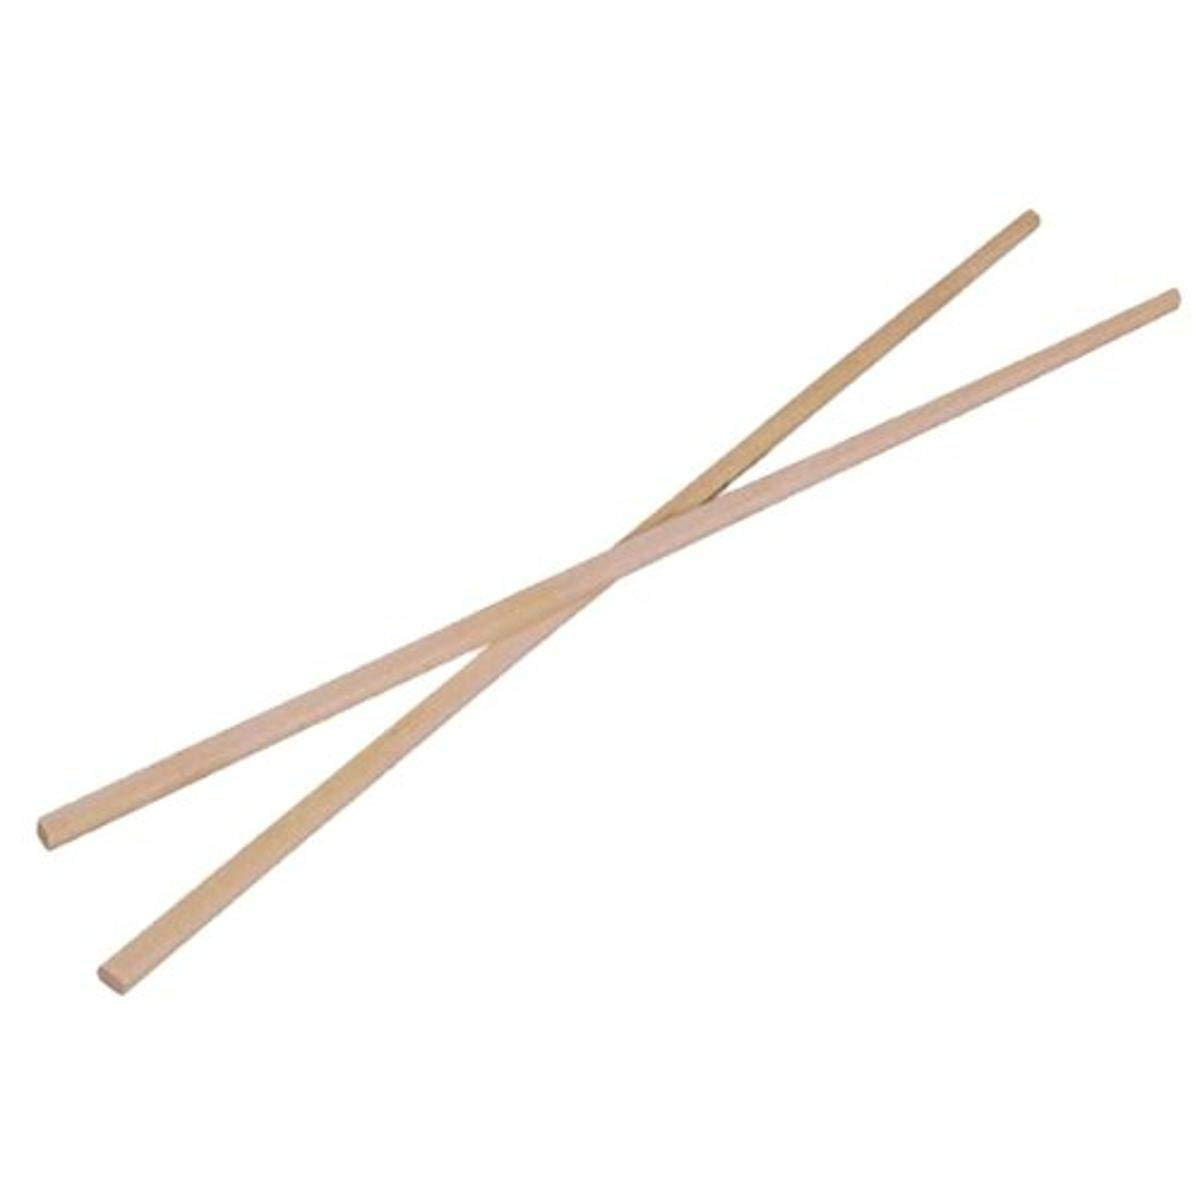 Bamboo Chopsticks in Sleeve (Case of 100), PacknWood - Disposable Chop Sticks for Cooking/Eating (9.45